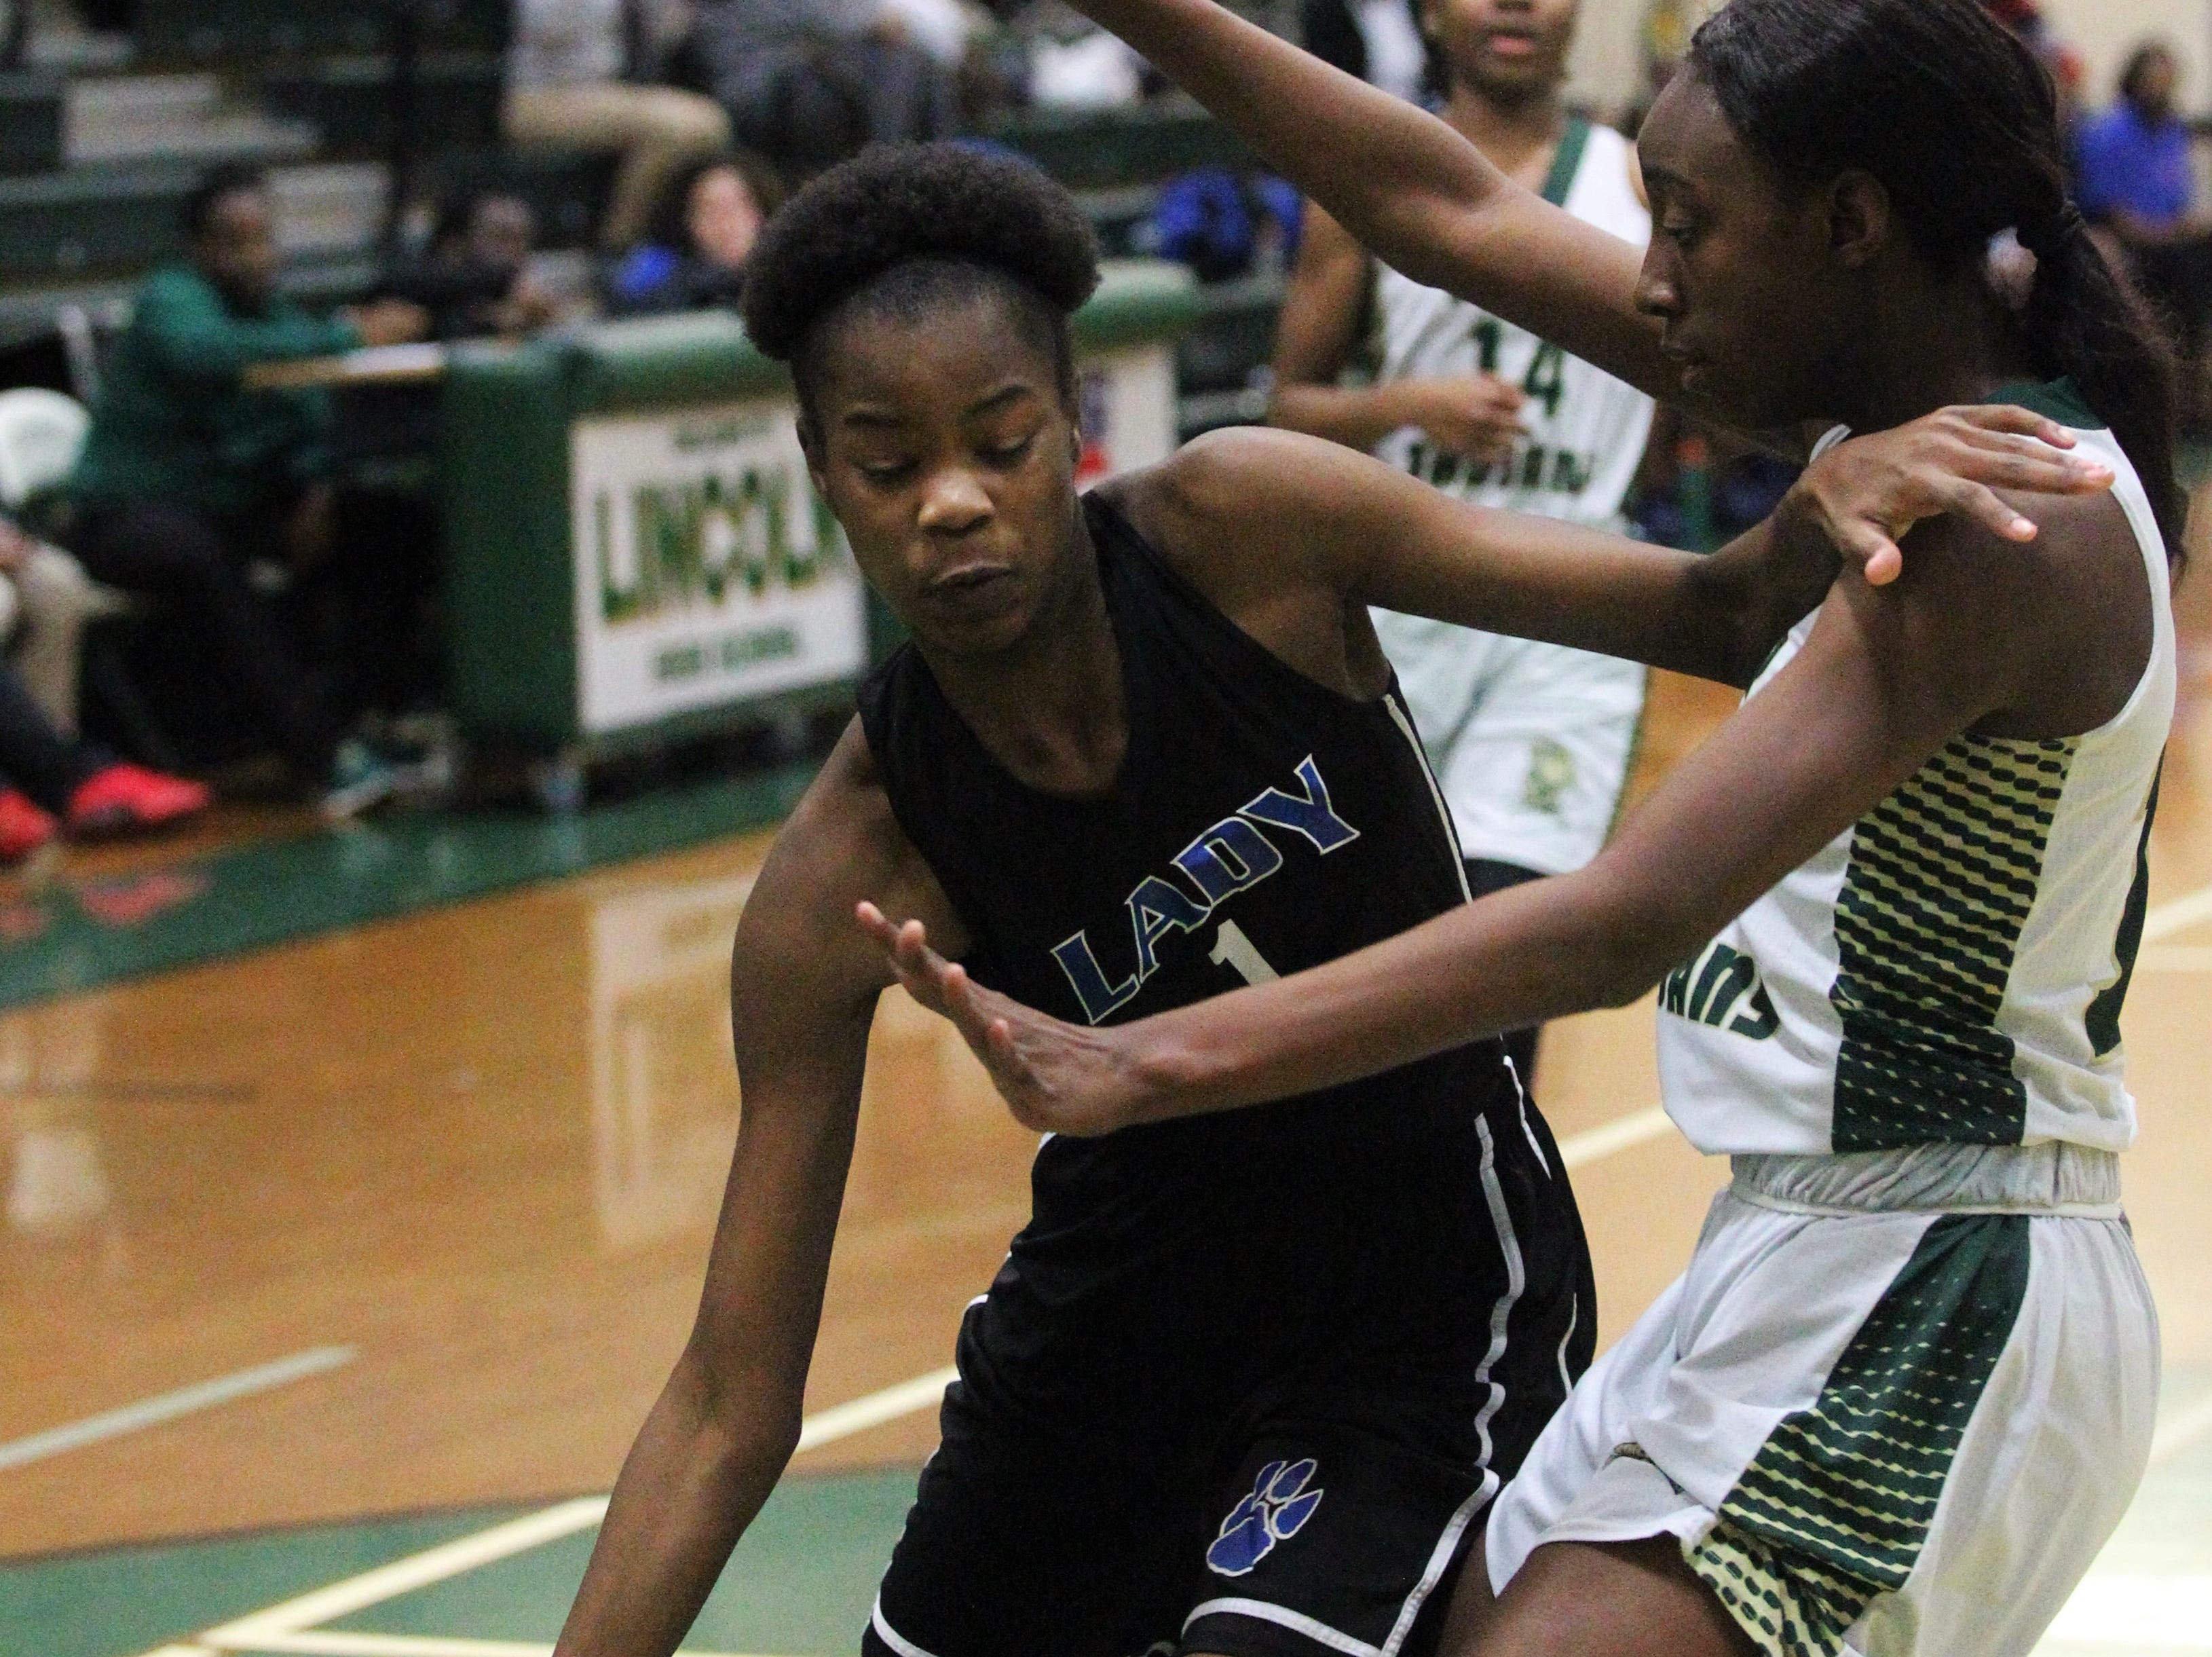 Godby's Imya Allen tries to get past Lincoln's Ziare Reynolds as Lincoln's girls basketball team beat Godby 67-32 on Jan. 29, 2019.